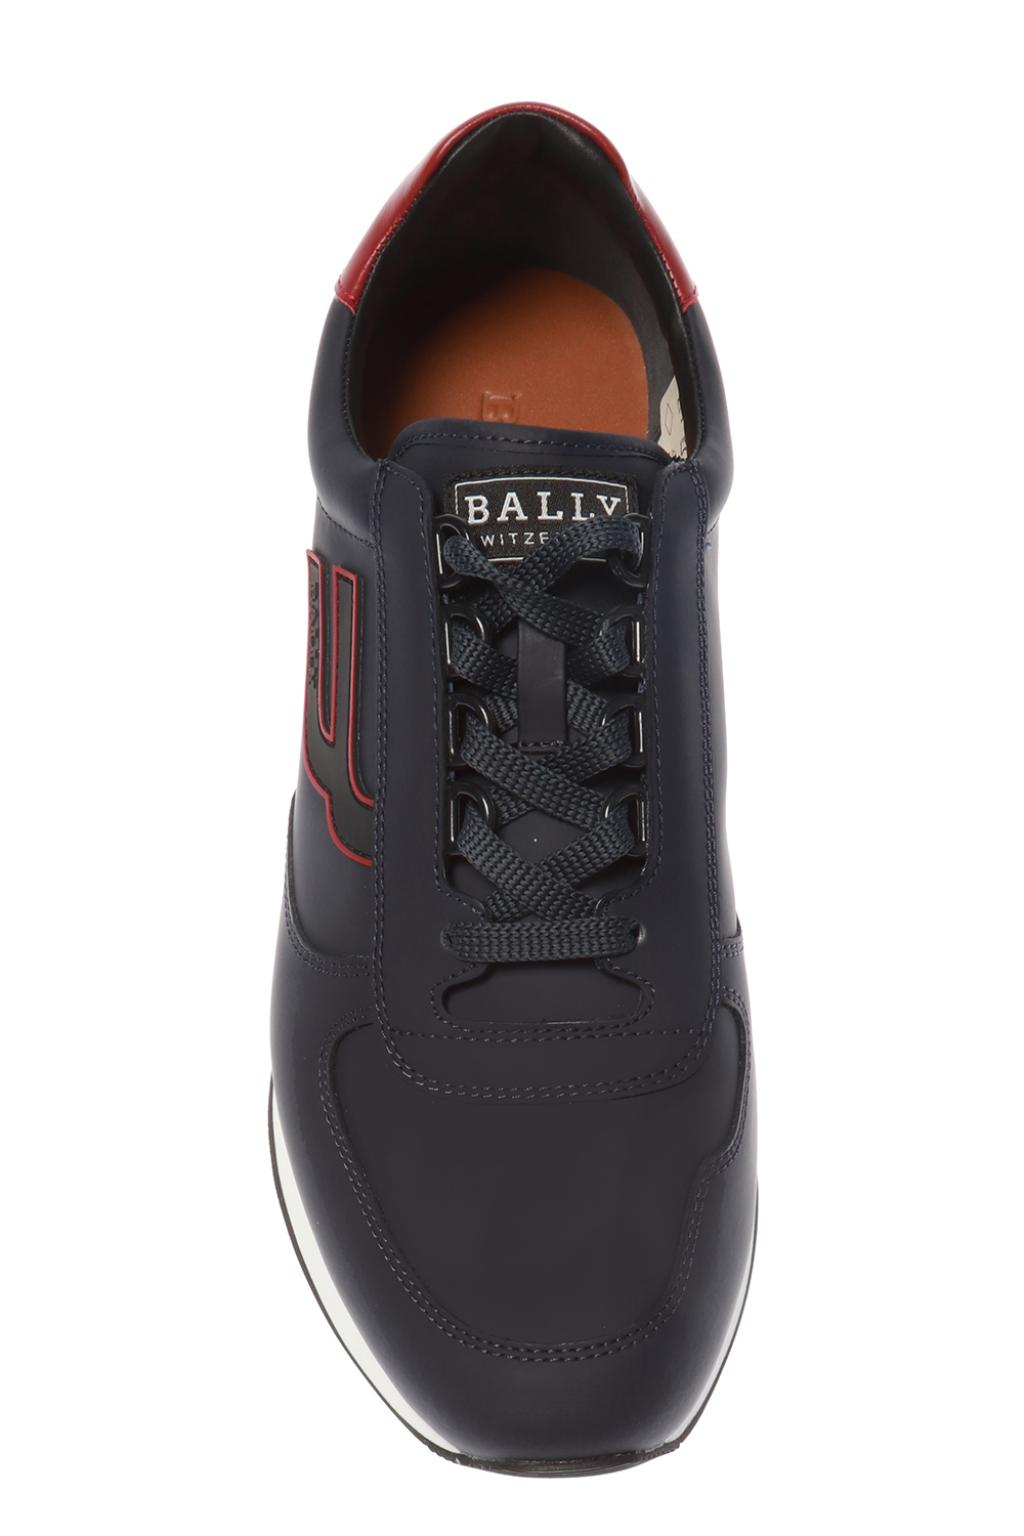 Bally 'Goldy' sneakers